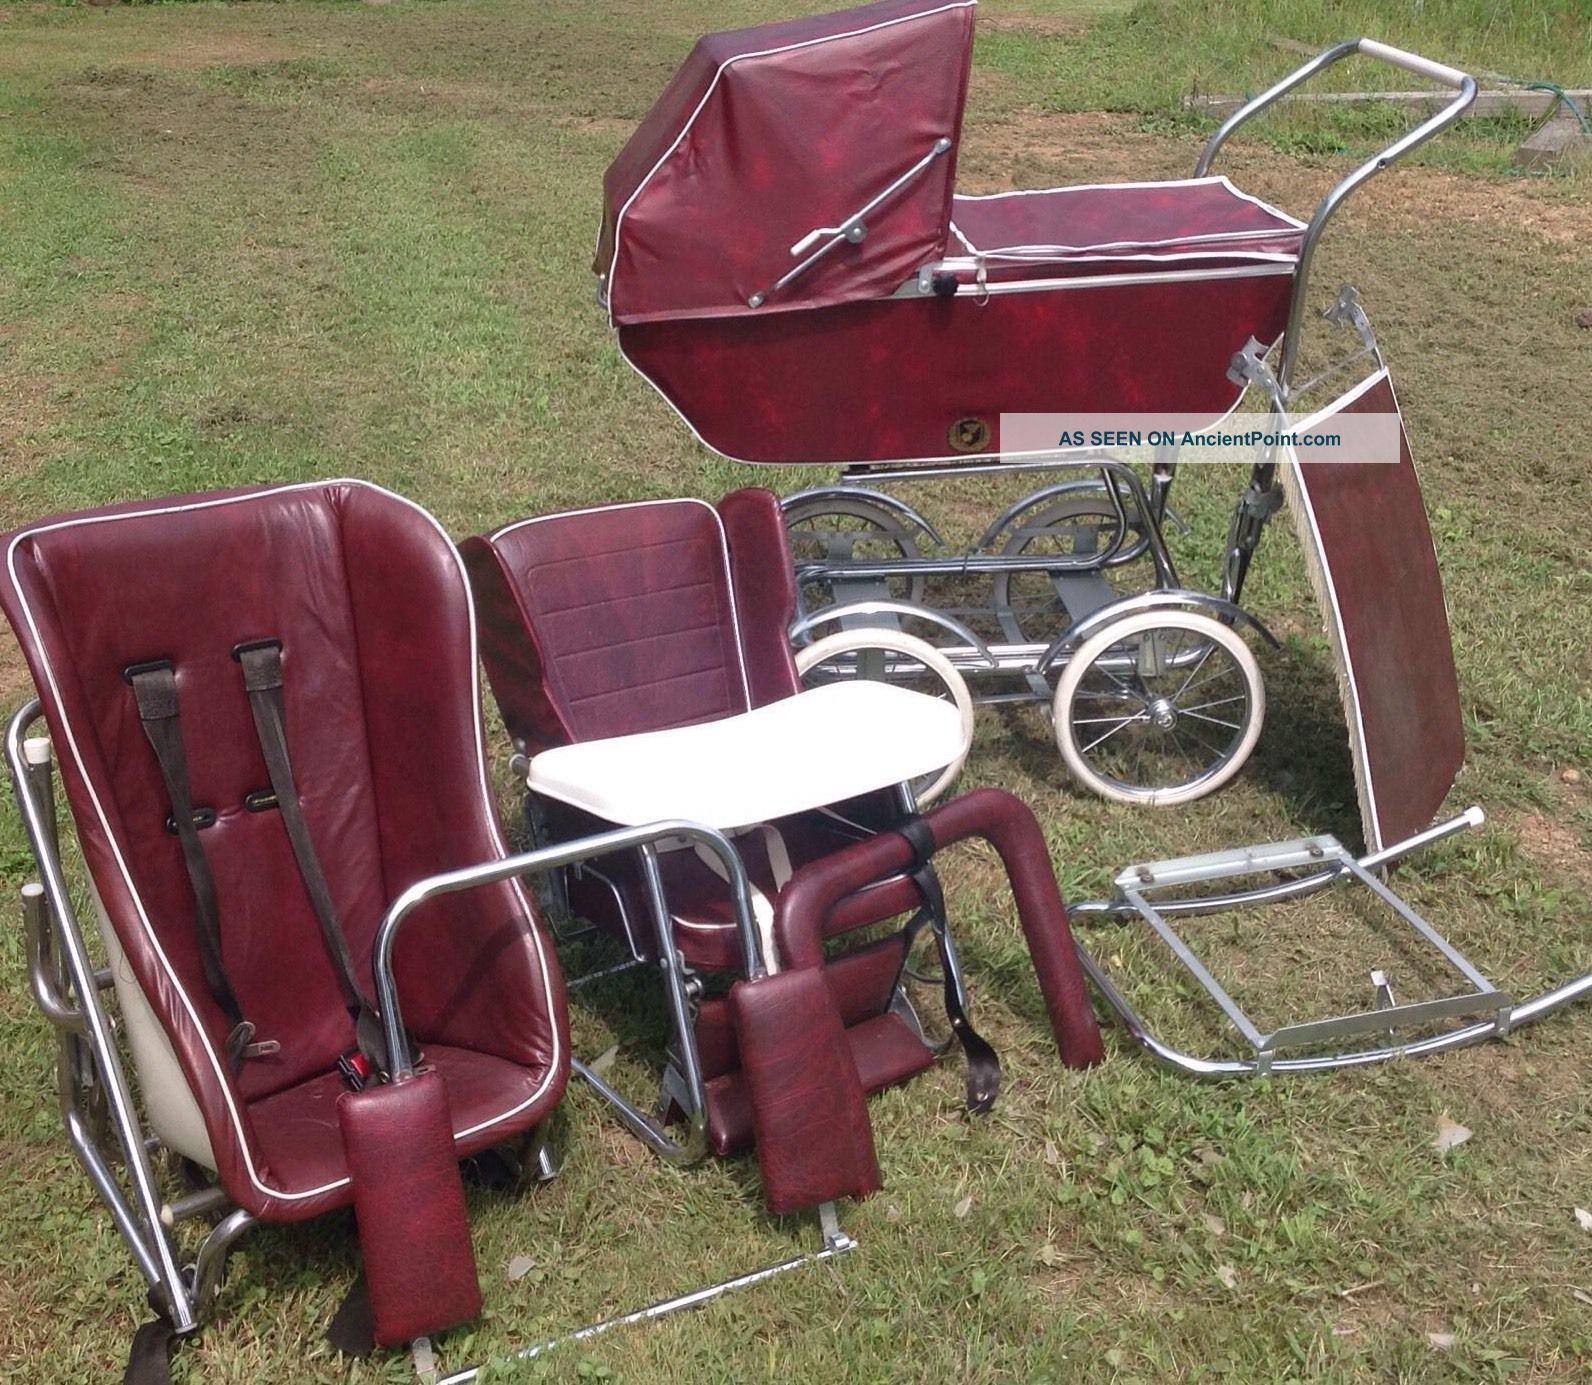 Vintage Babyhood Baby Carriage Buggy Stroller By Wonda - Chair Baby Carriages & Buggies photo